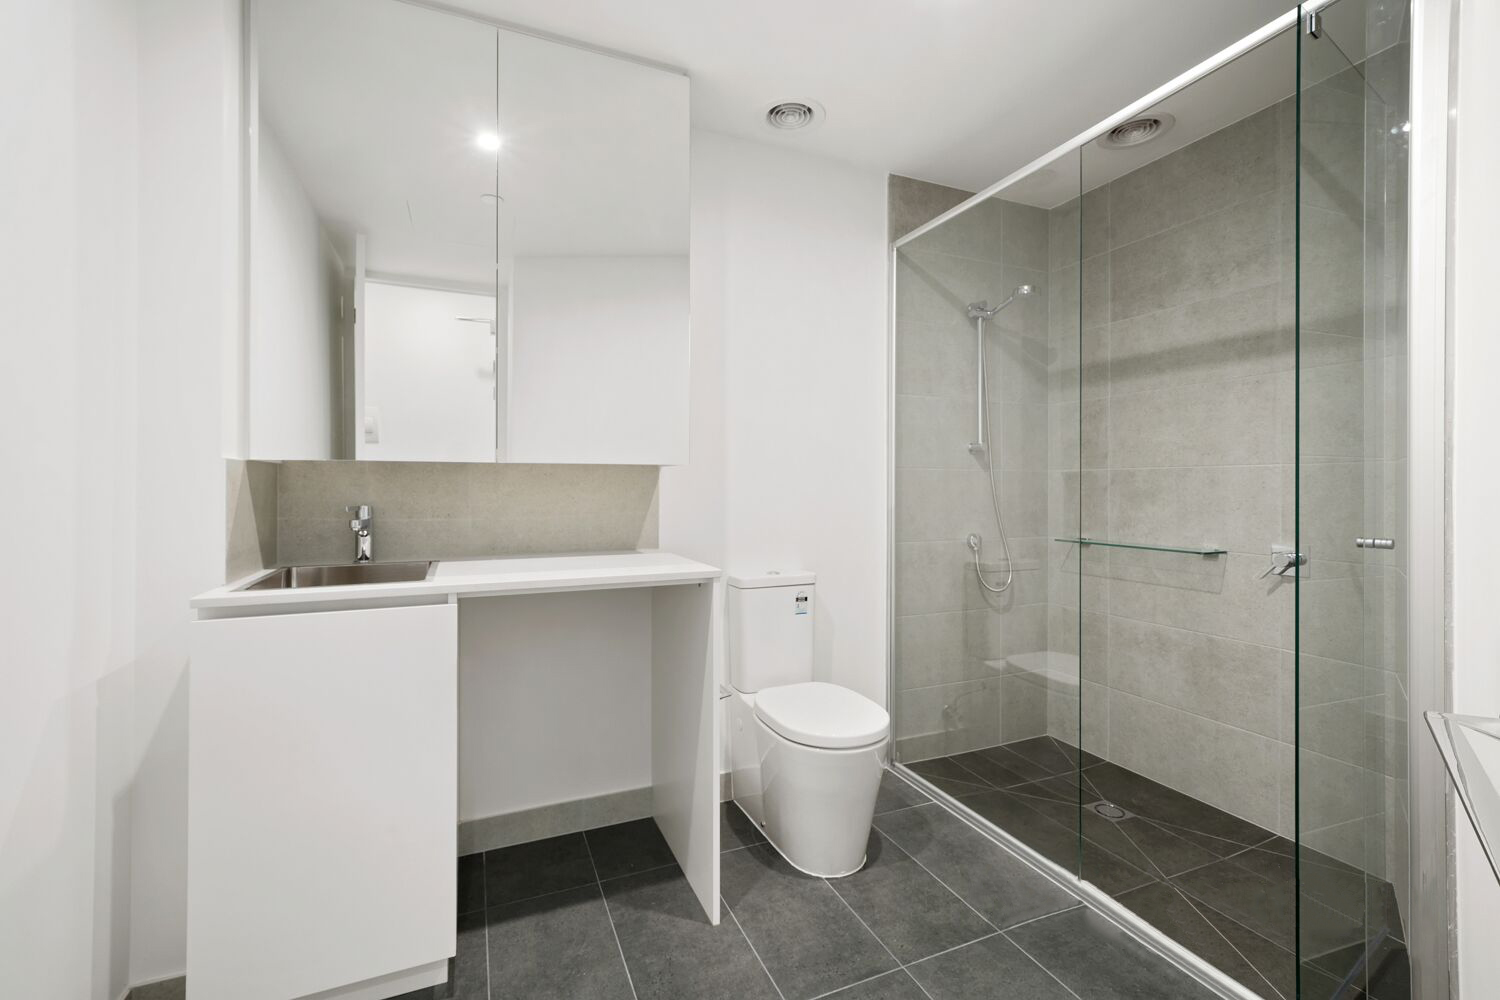 206-108-munster-terrace-north-melbourne-student-accommodation-Melbourne-Bathroom-Unilodgers